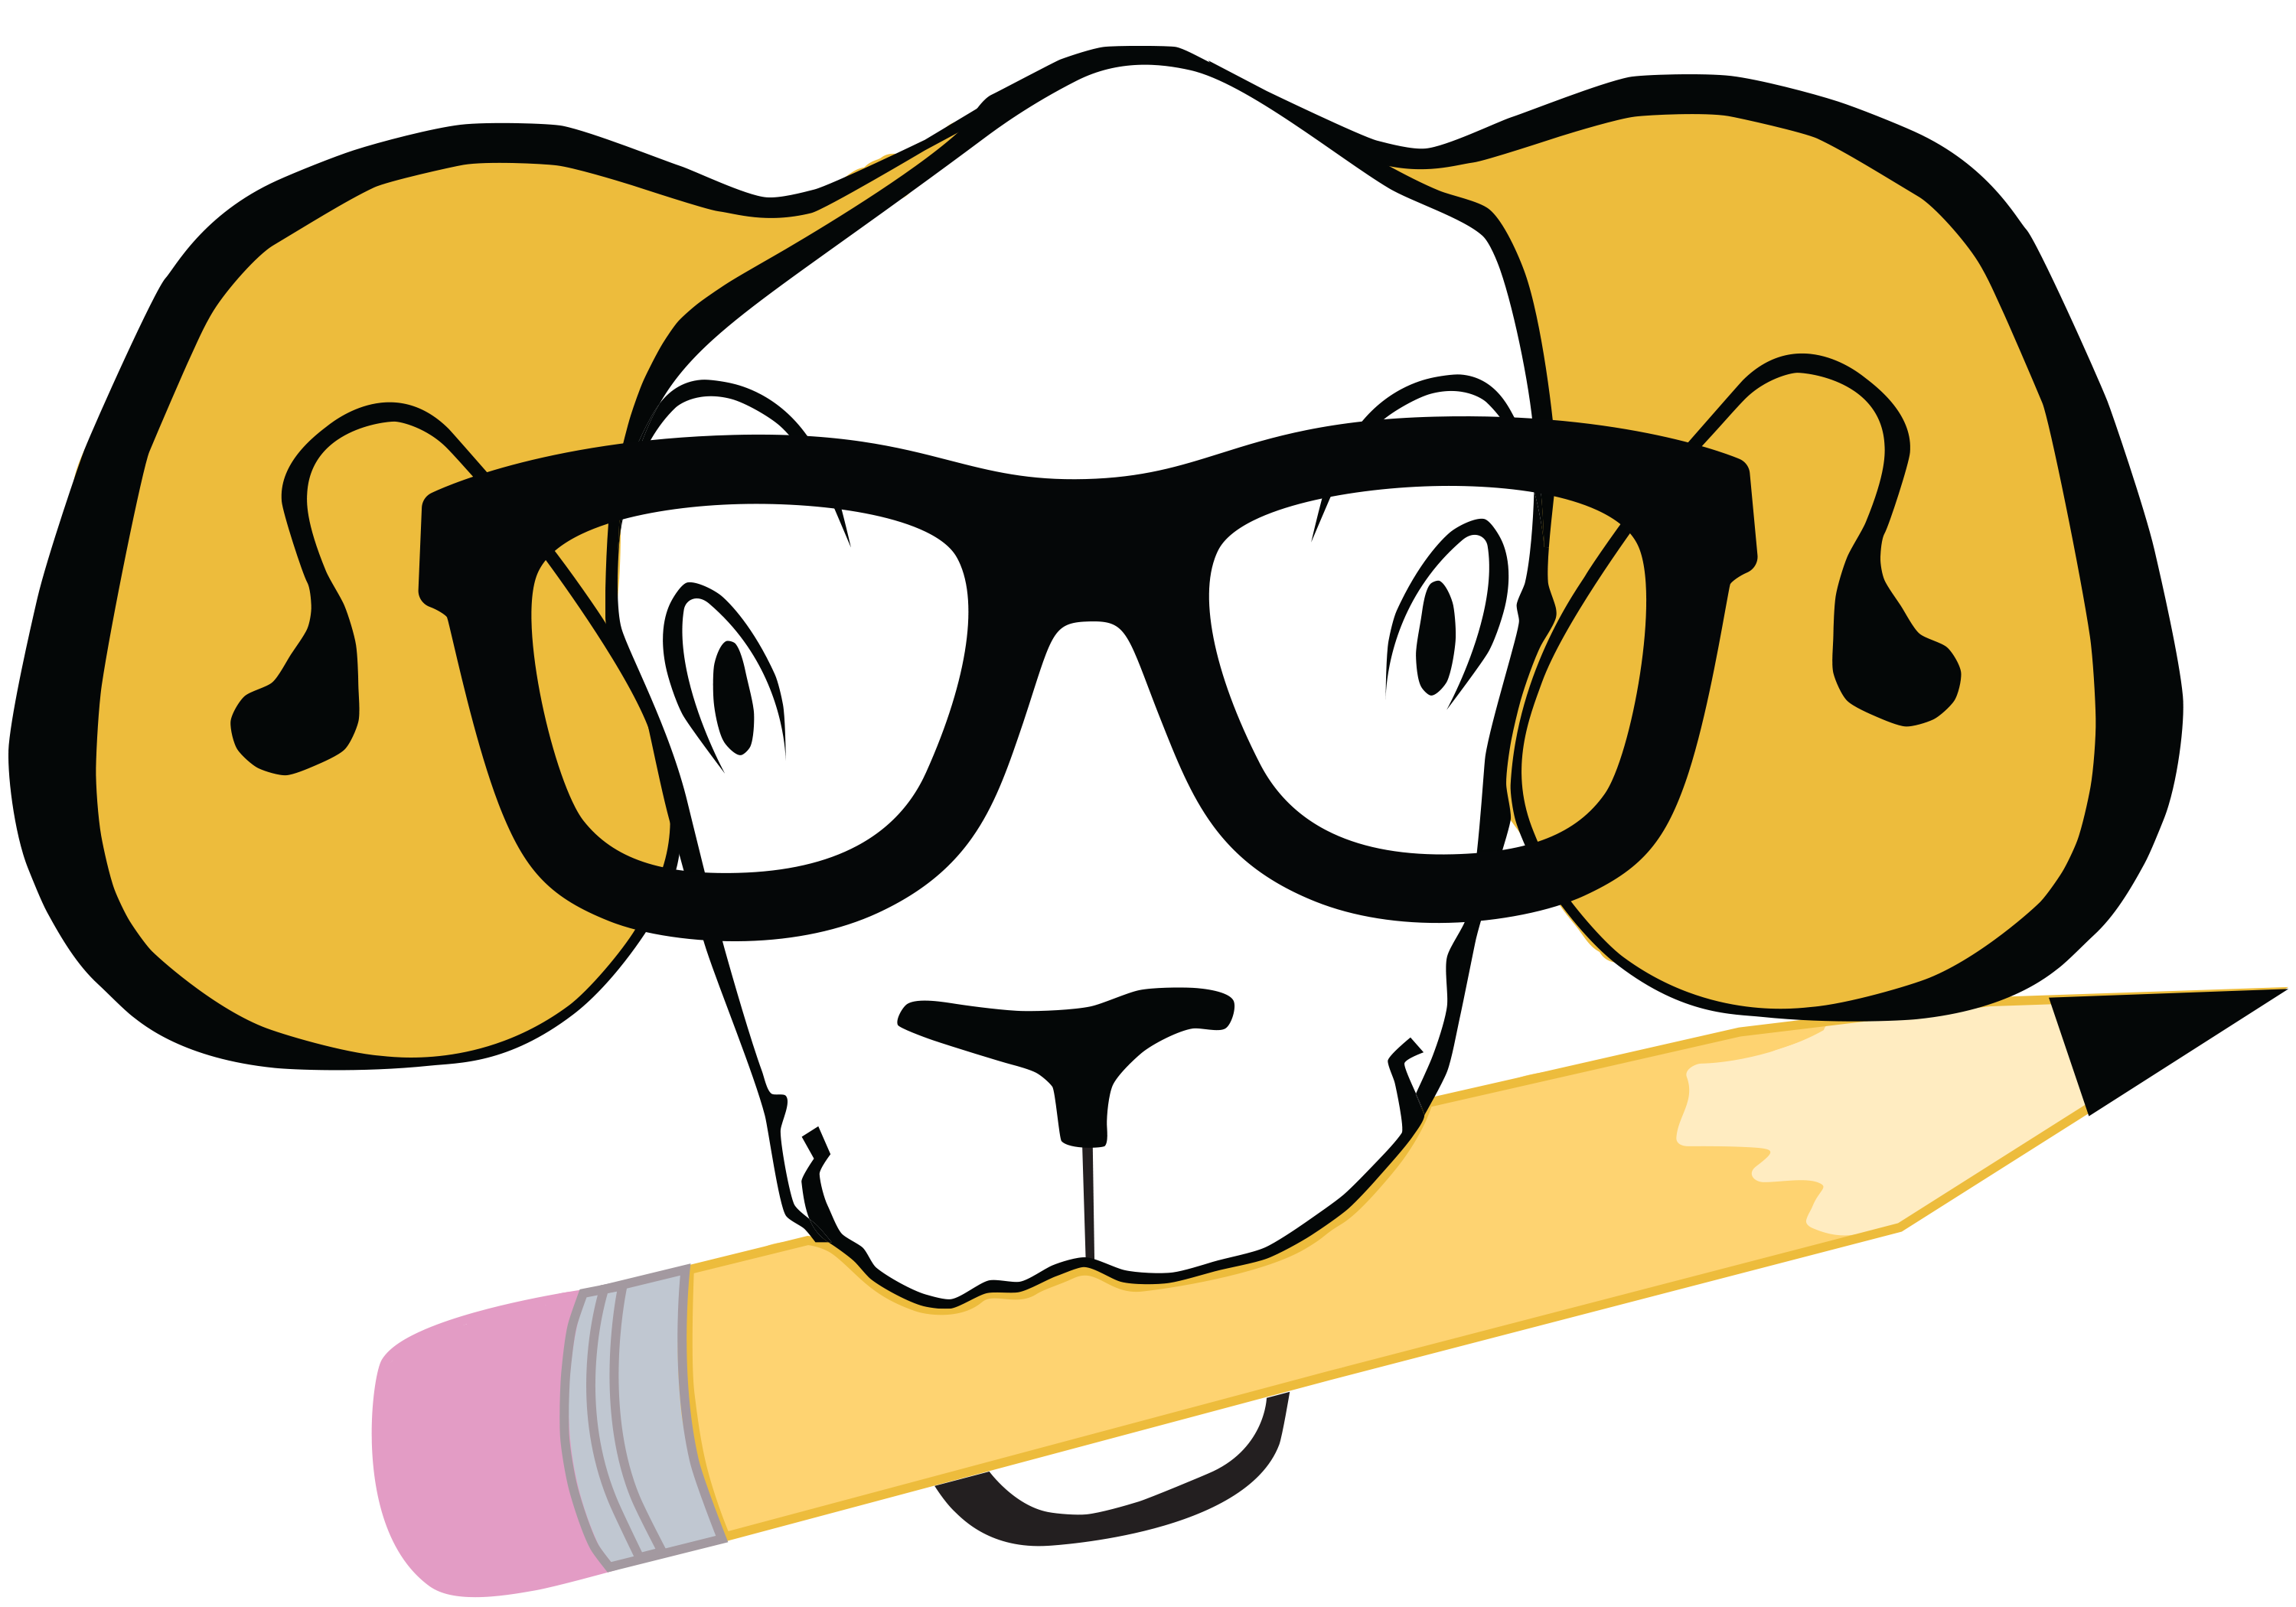 A cartoon ram holding a pencil in its mouth.